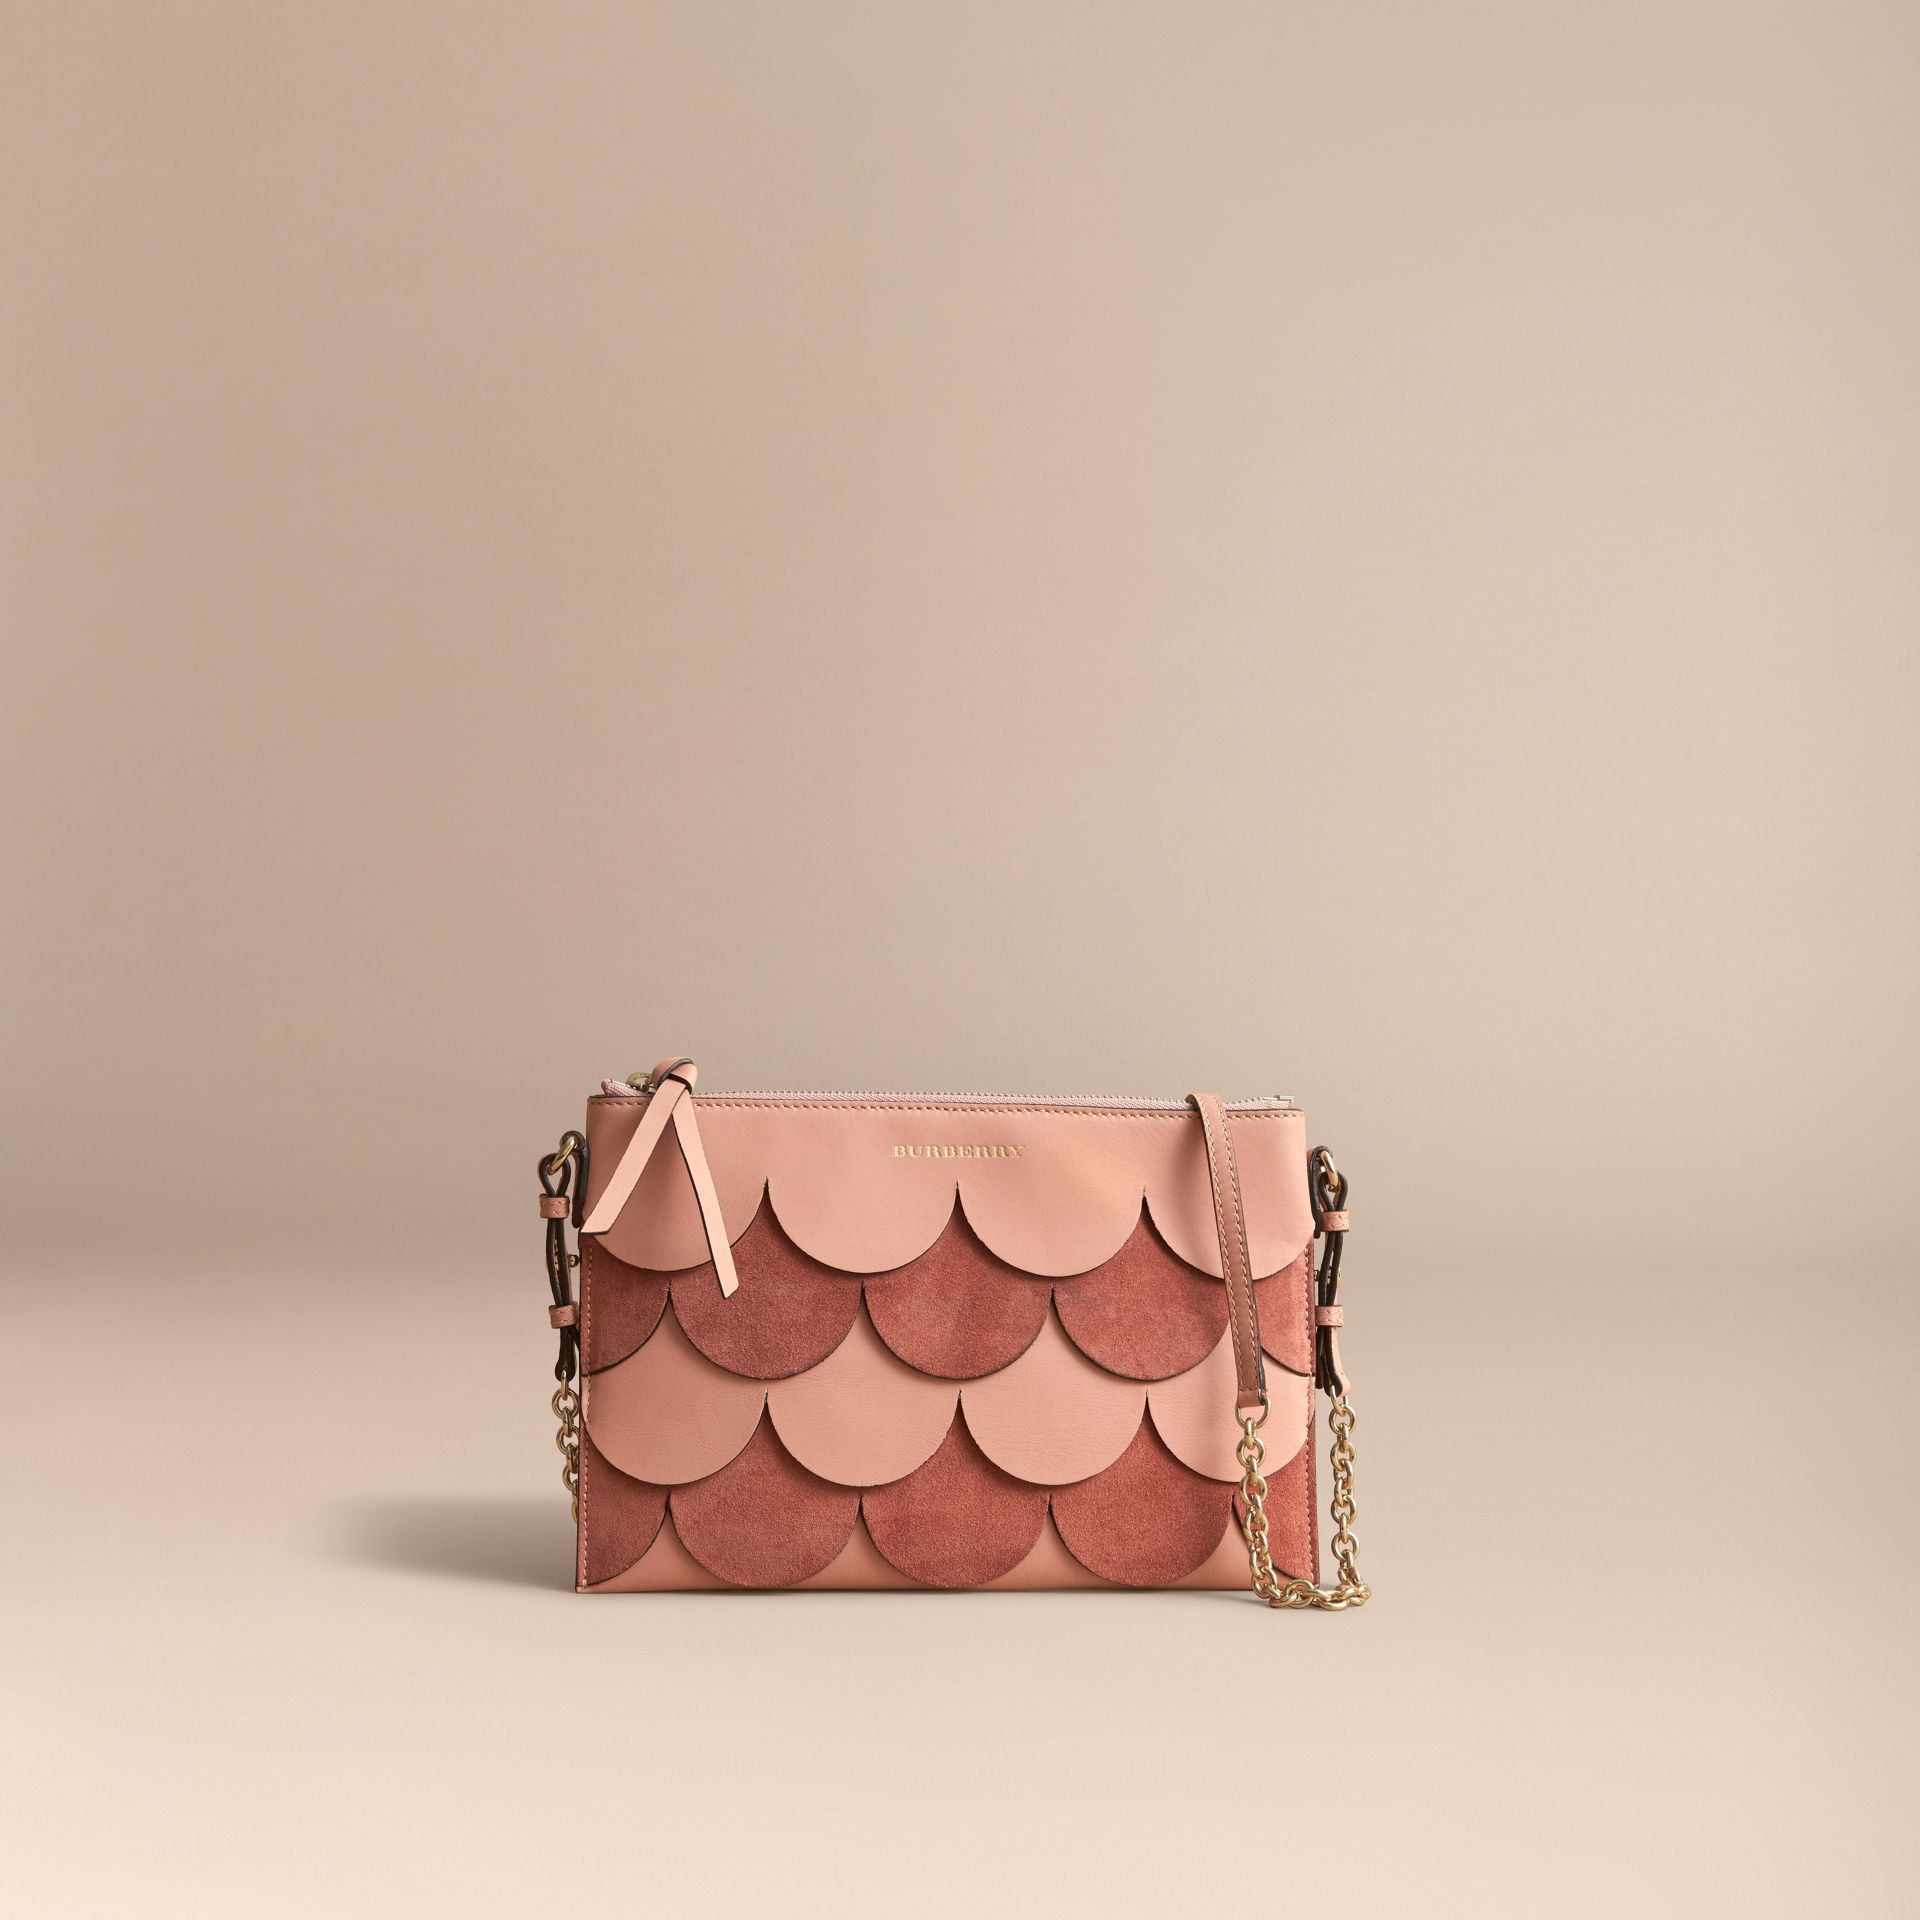 Two-tone Scalloped Leather and Suede Clutch Bag in Ash Rose - Women | Burberry - gallery image 8